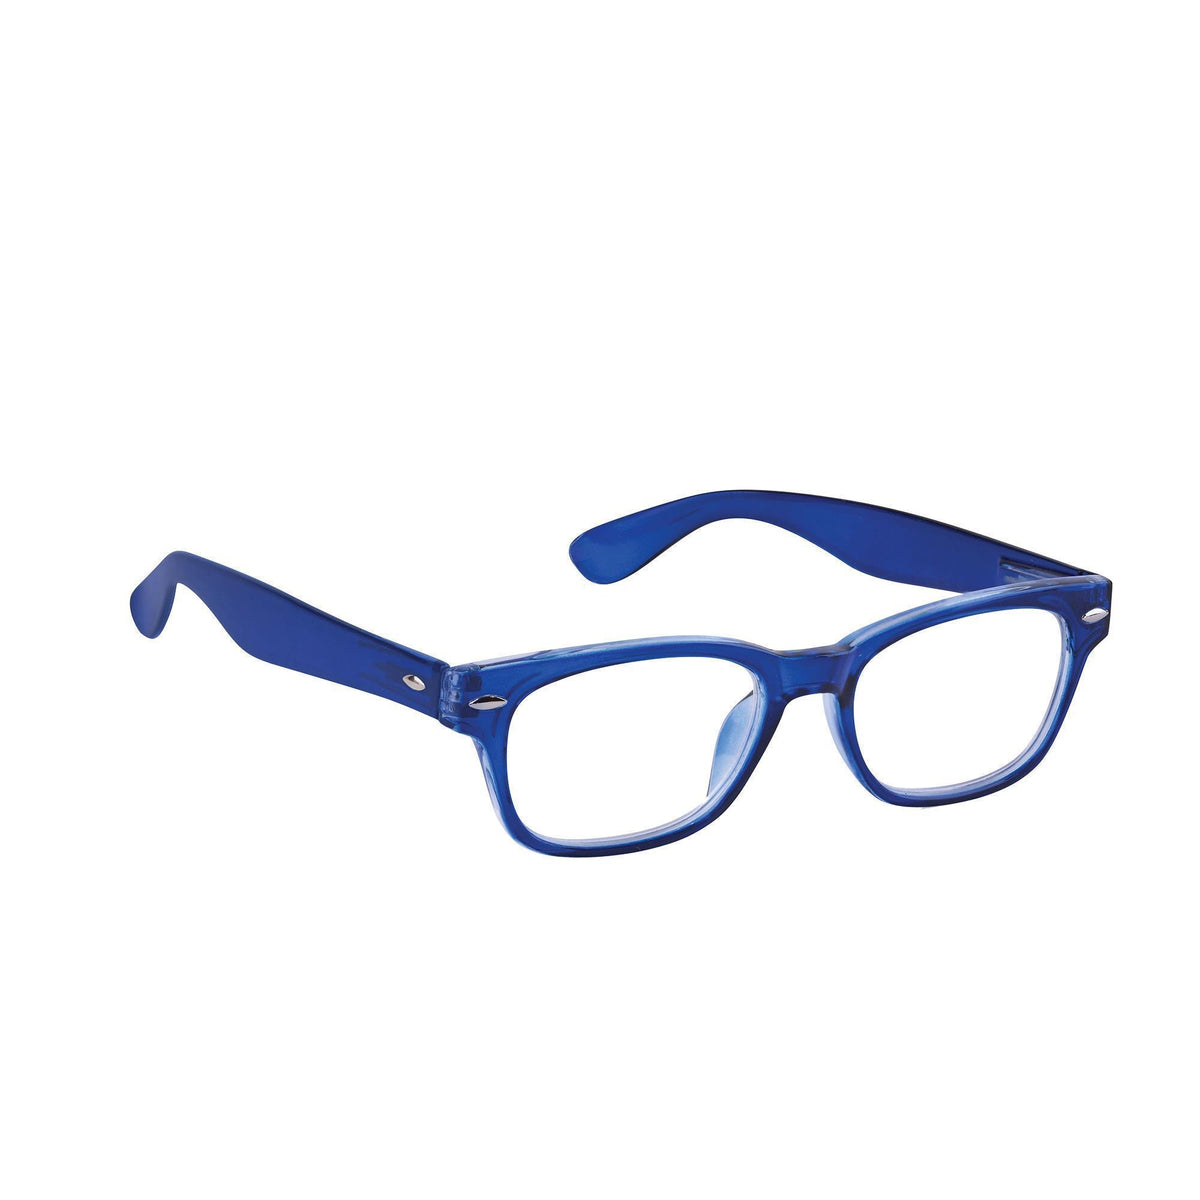 Peeperspecs Simply Peepers Blue Reading Glasses